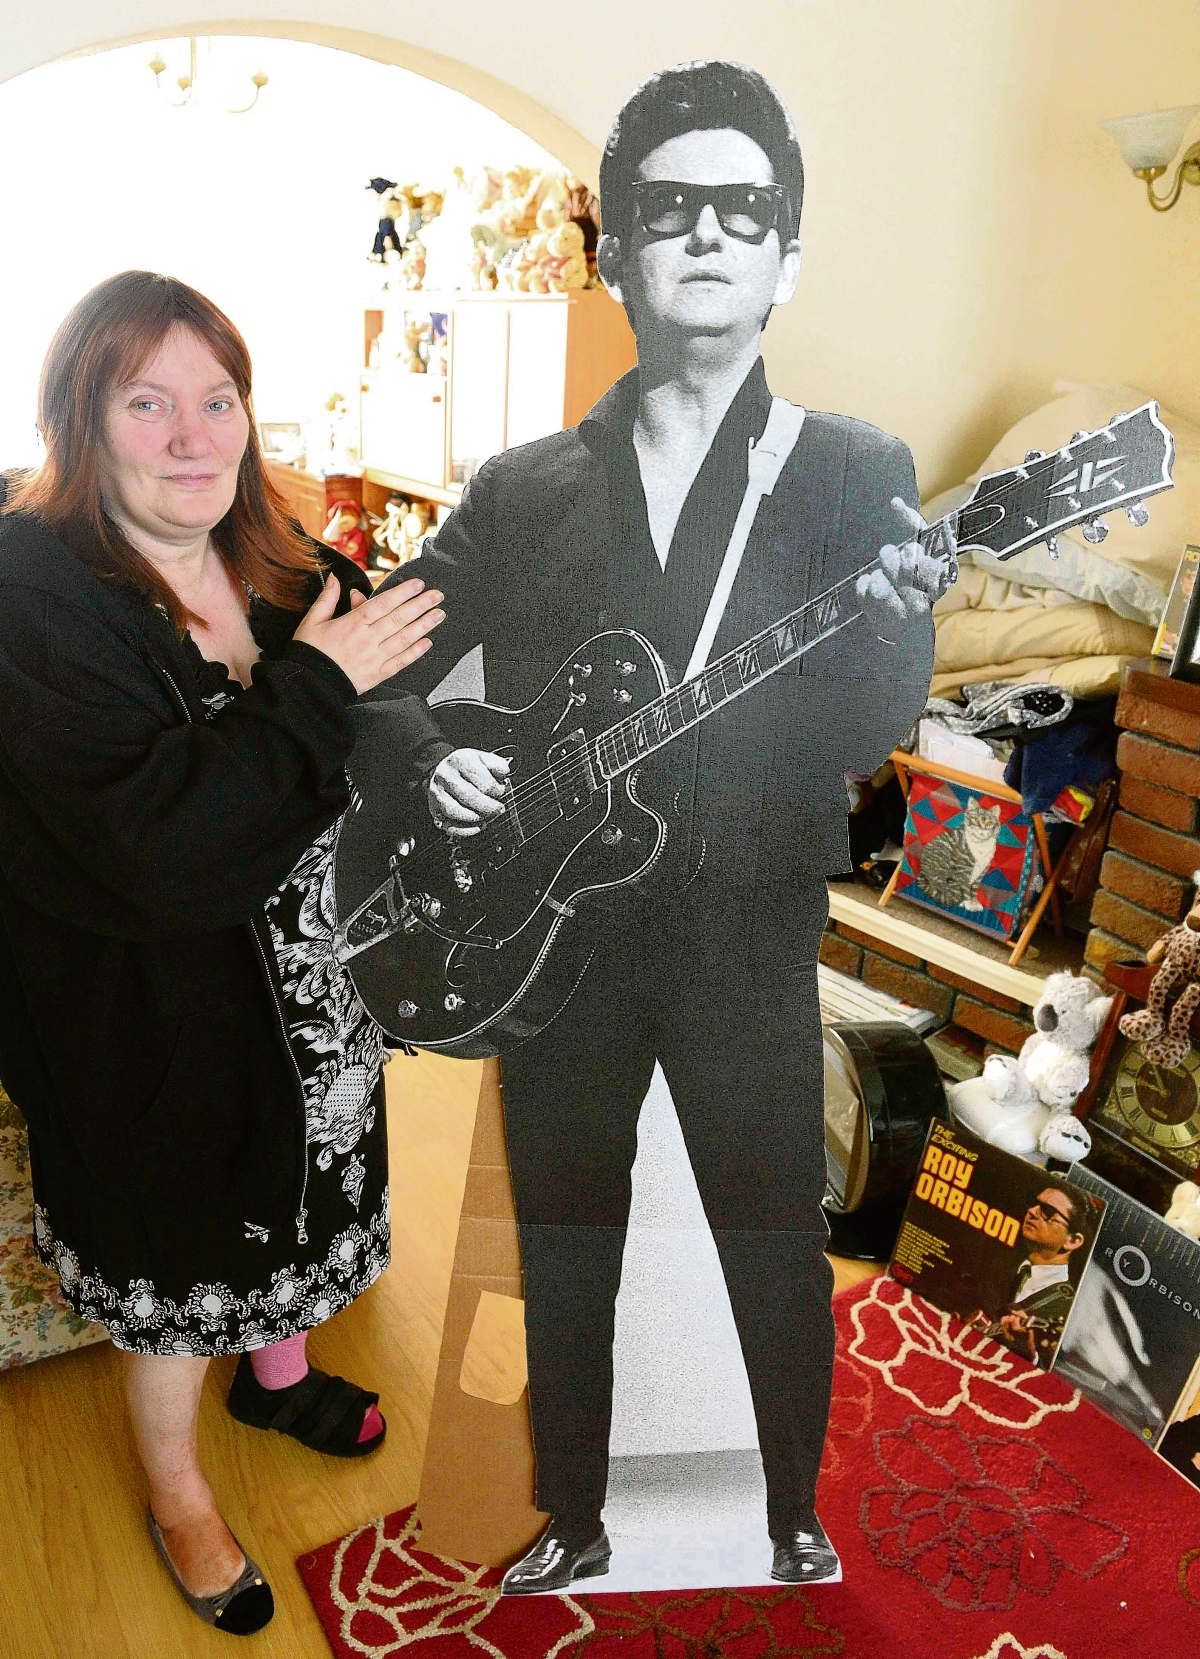 Meet Colchester's very own Roy Orbison superfan